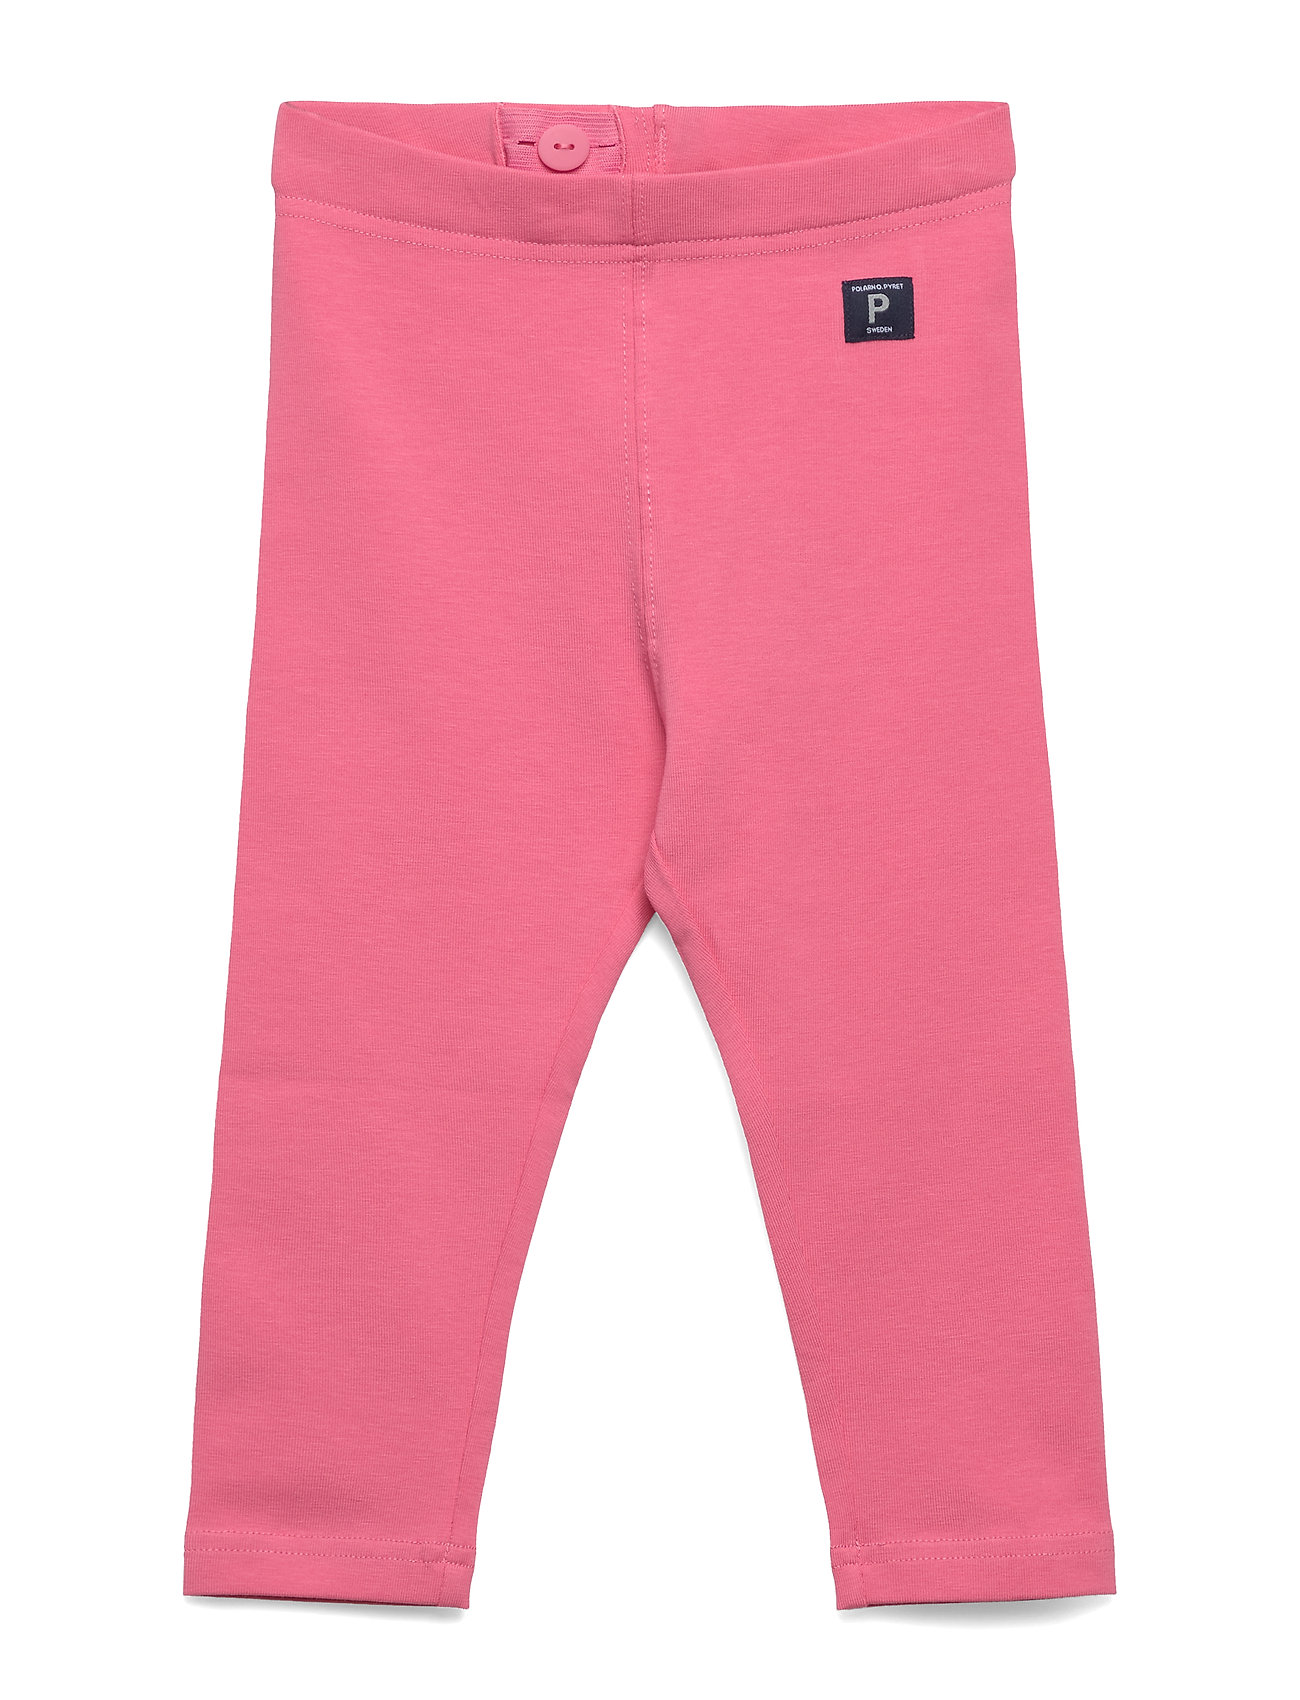 Polarn O. Pyret Leggings Solid Preschool - PINK CARNATION